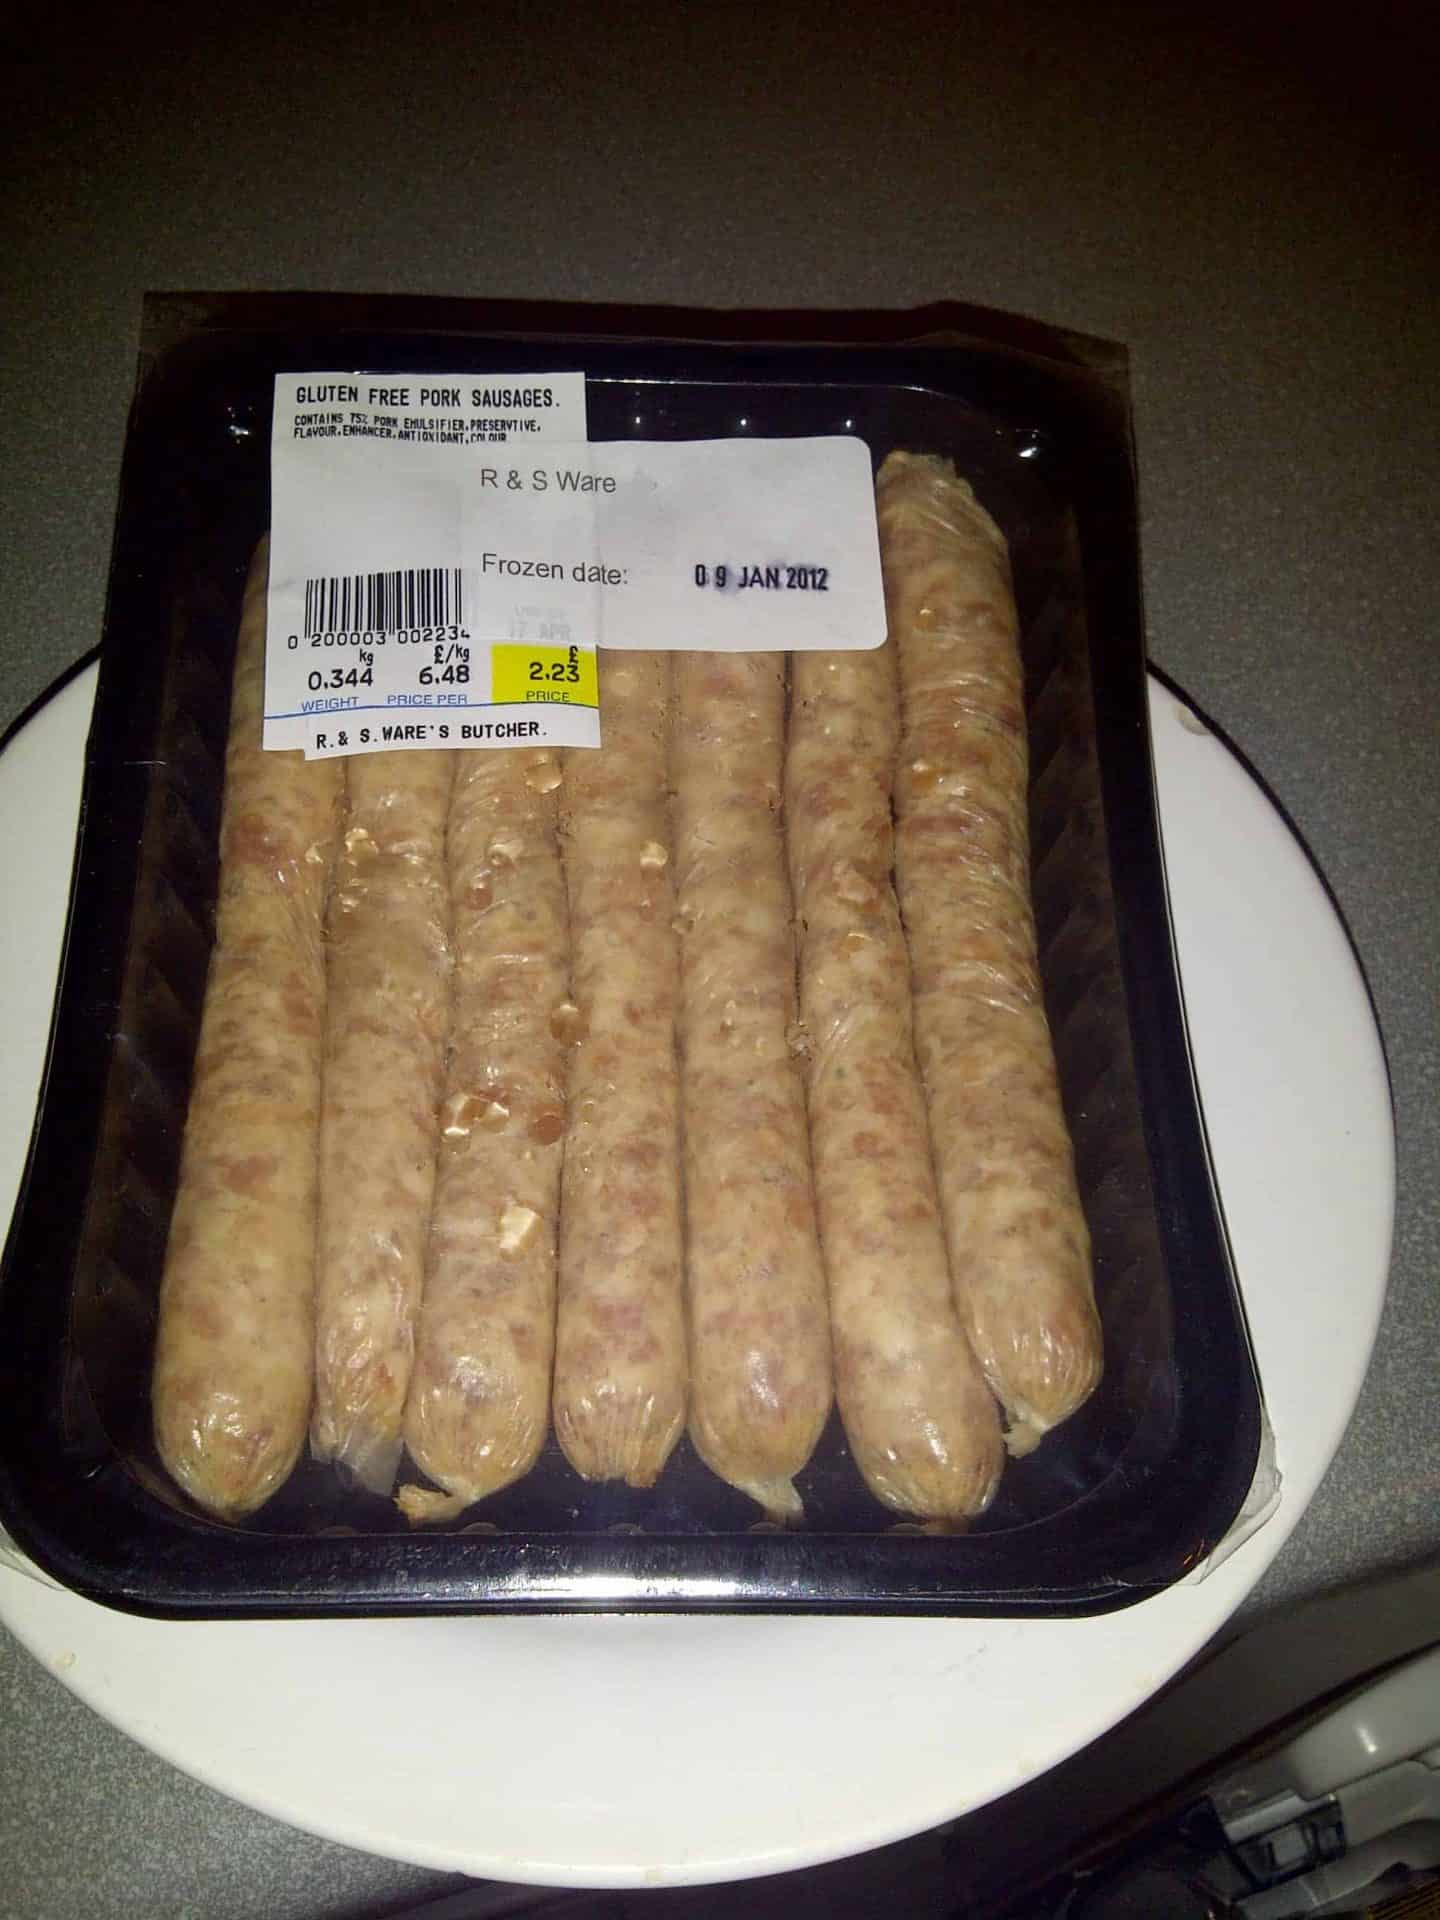 Gluten free sausages from a local butcher